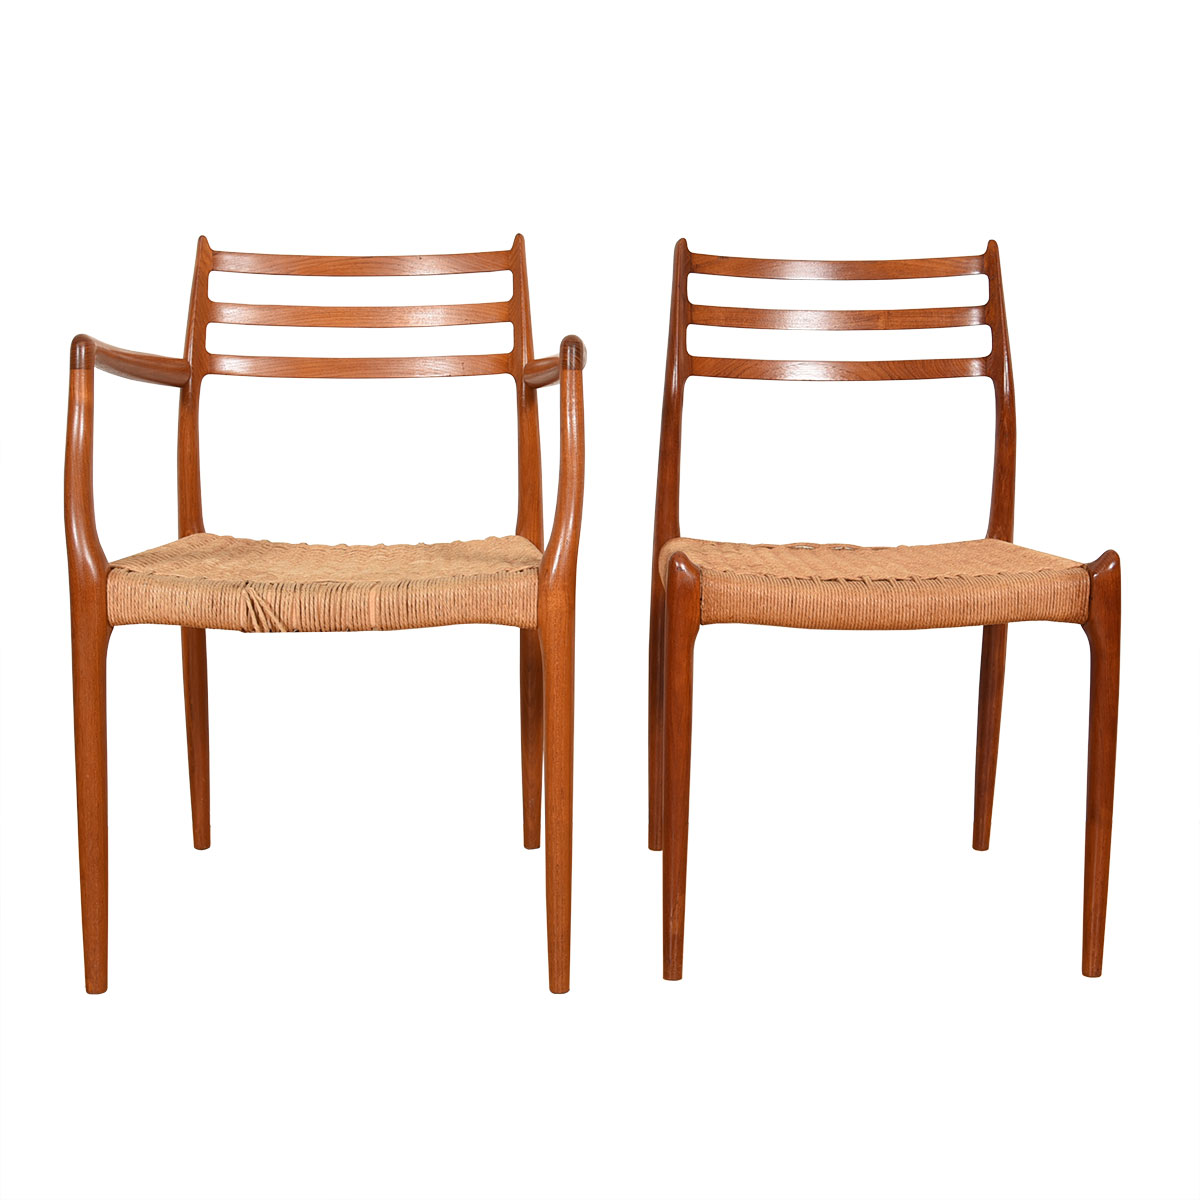 Set of 8 Teak Dining Chairs 2 Arm (Model #62) + 6 Side (Model #78) by Niels Møller